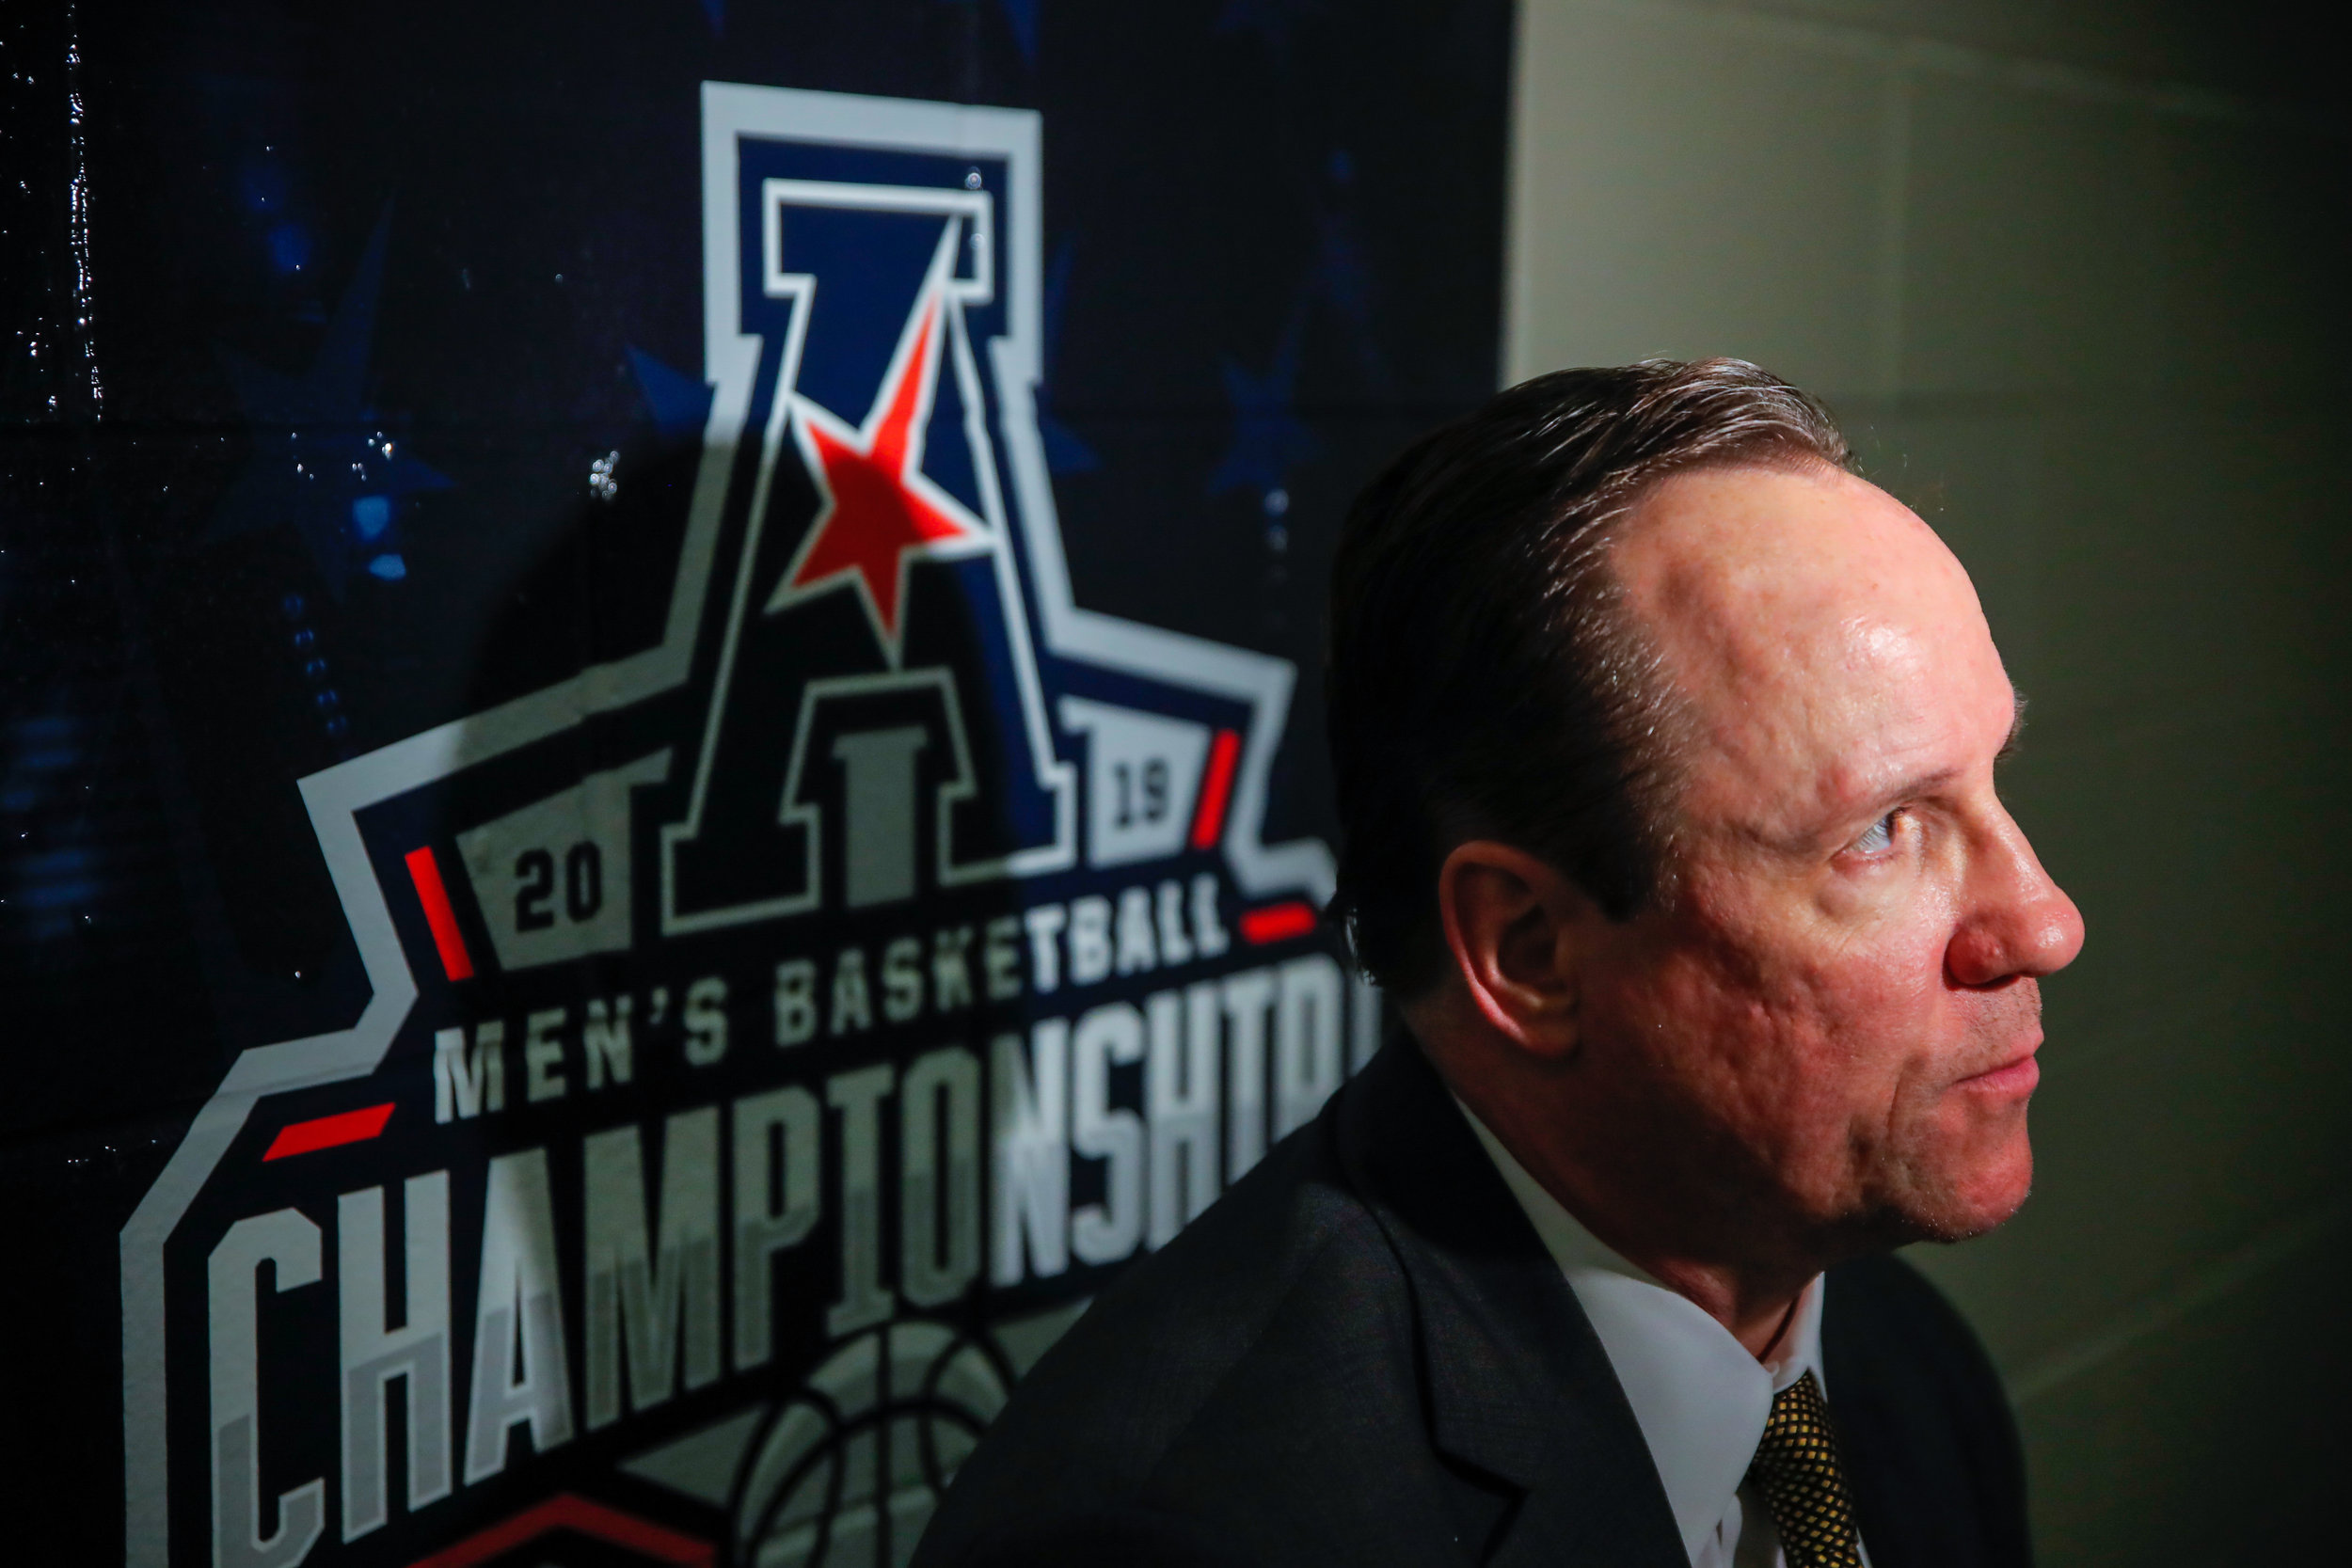 Wichita State coach Gregg Marshall speaks with  media after the game against Temple on March 15, 2019 at the FedExForum in Memphis, Tennessee. (Photo by Joseph Barringhaus/The Sunflower).